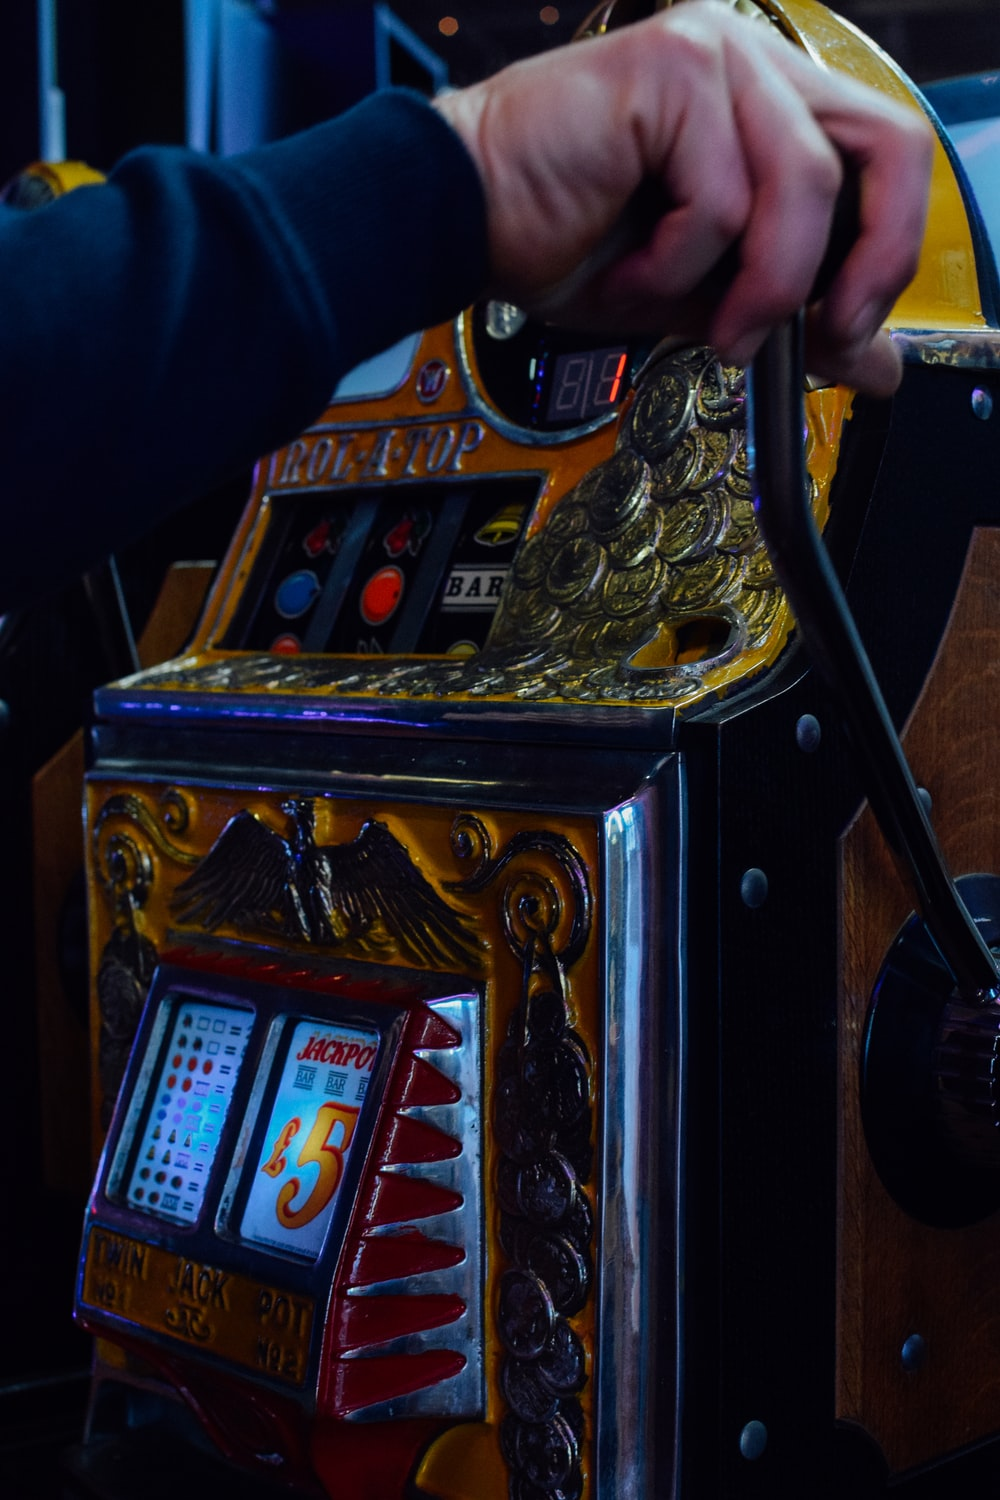 person playing slot machine displaying 5